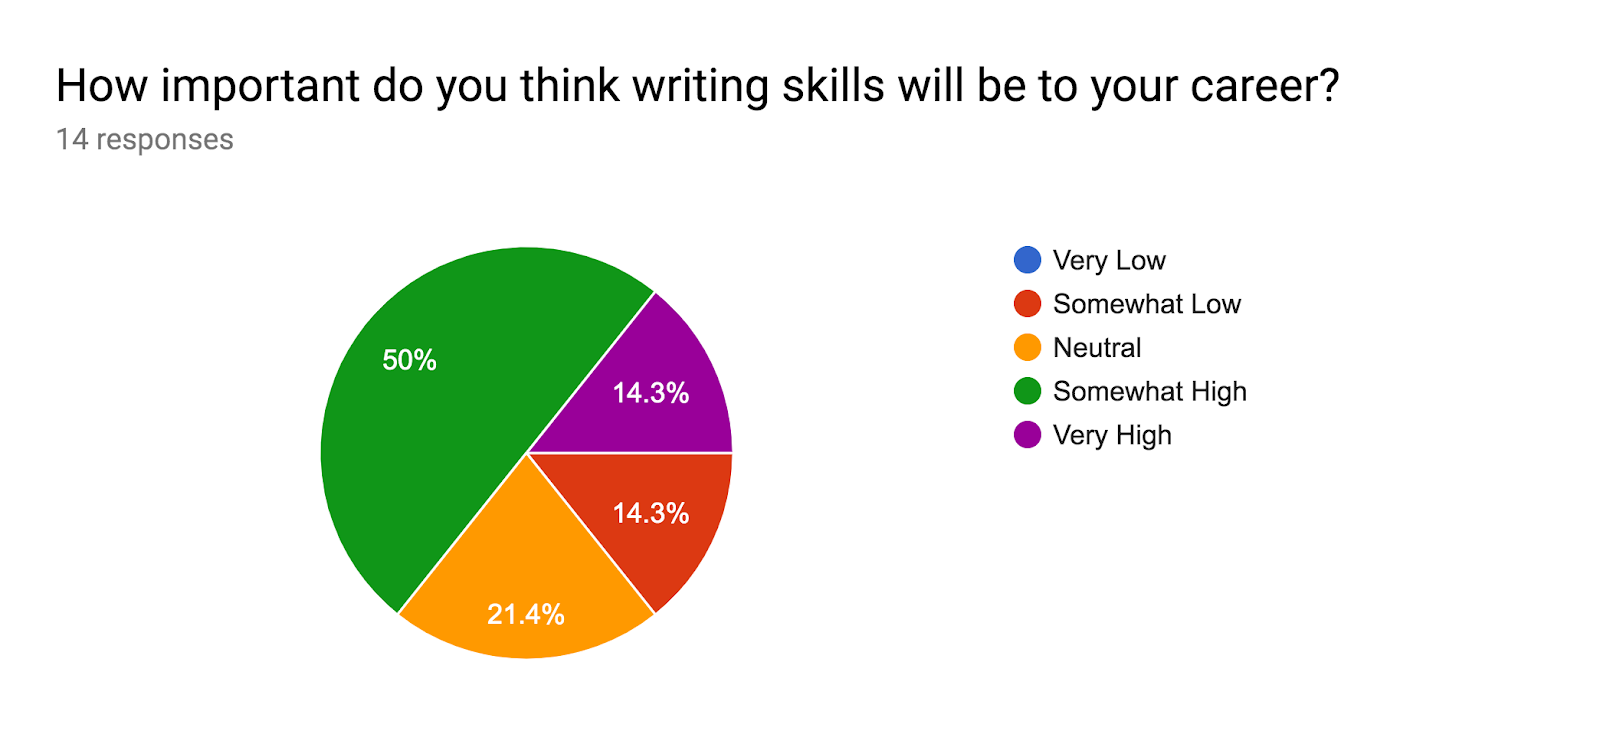 Forms response chart. Question title: How important do you think writing skills will be to your career?. Number of responses: 14 responses.